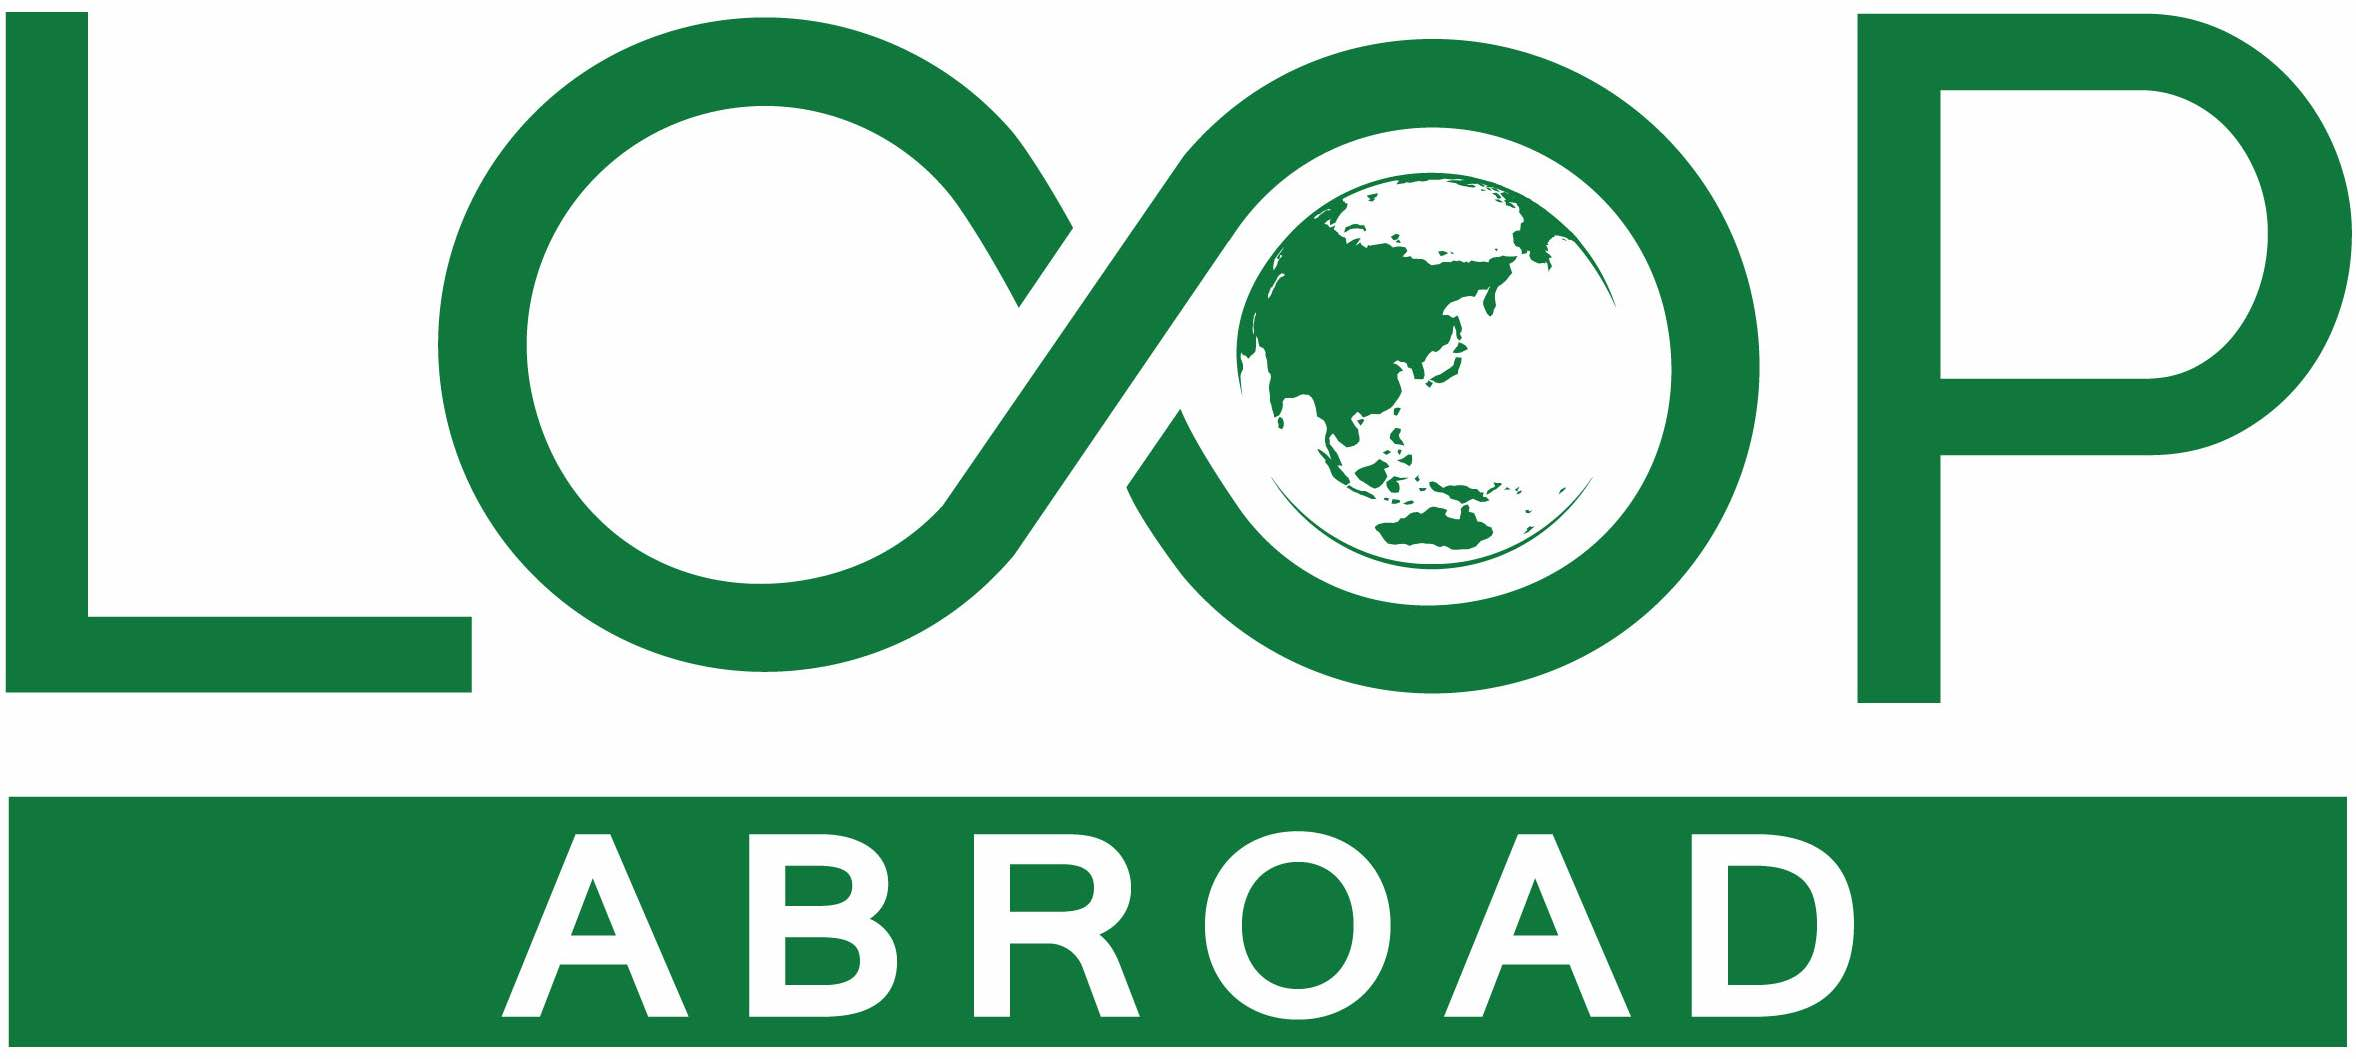 Loop Abroad: Scientific Research and Design